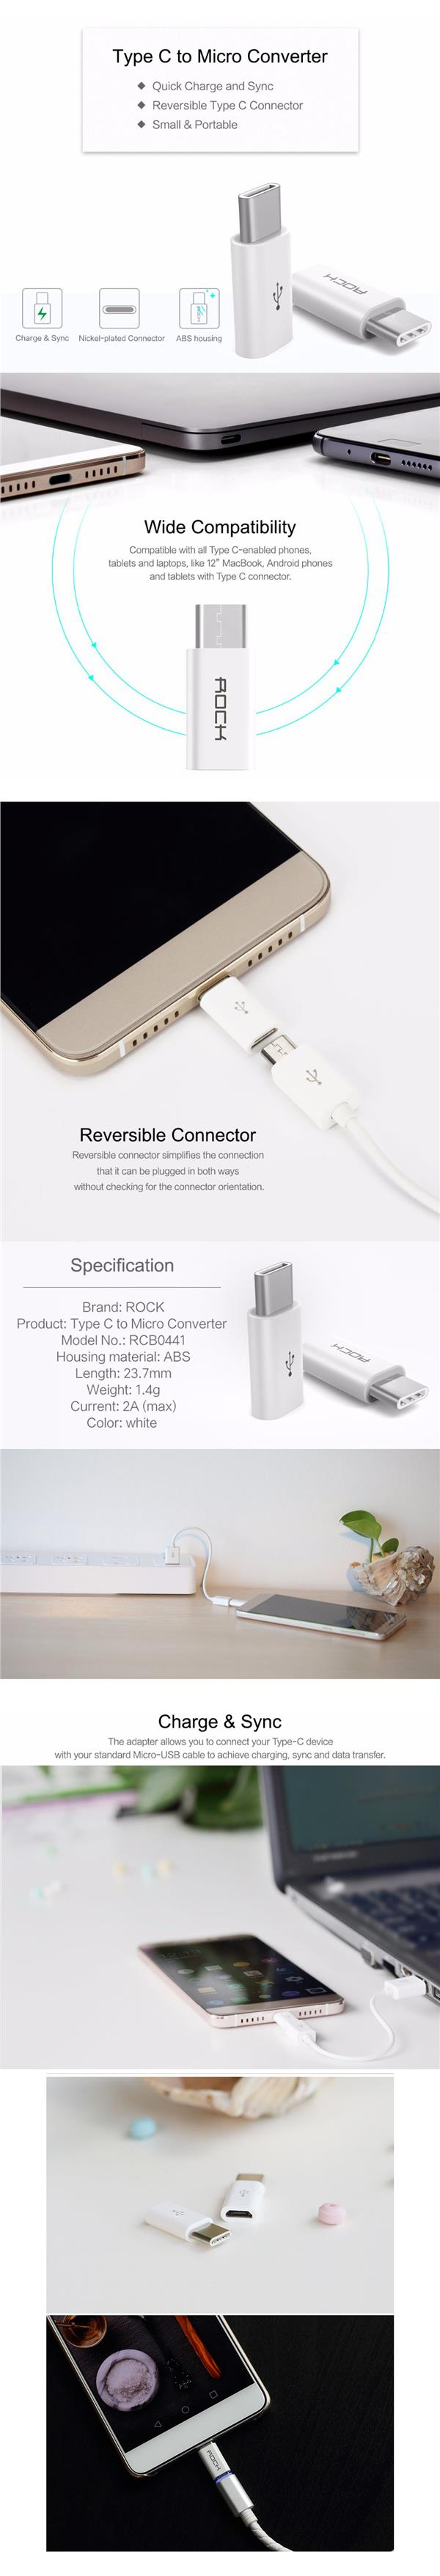 ROCK Type-C to Micro USB Adapter